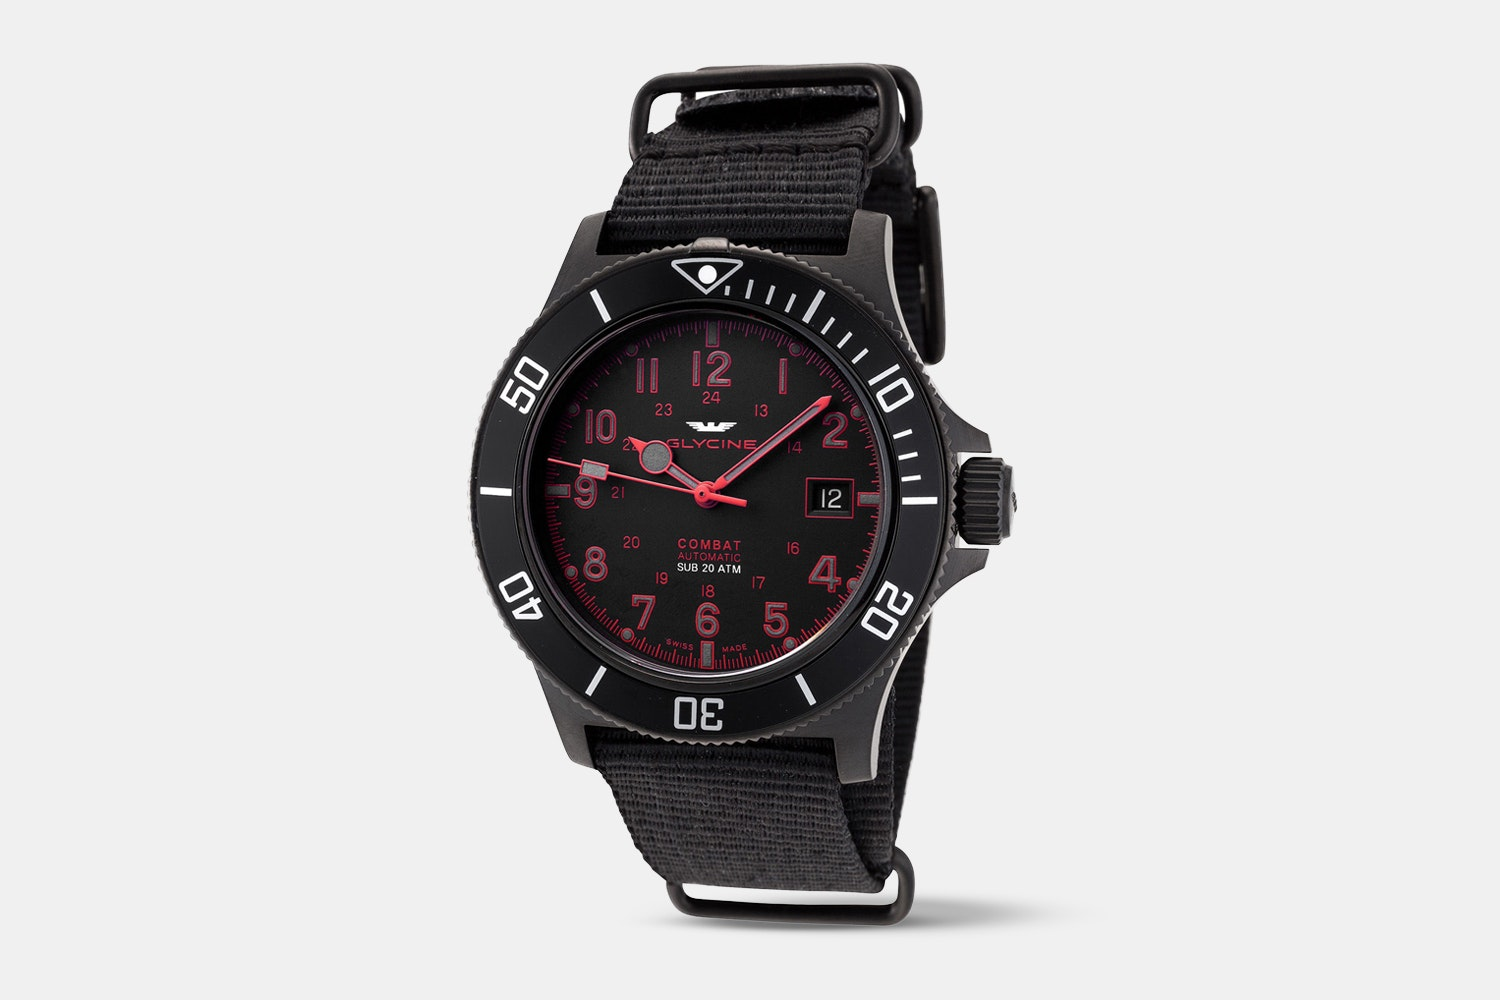 GL0085 | Black Dial, Black Bezel, Red Numerals, Black Fabric Strap